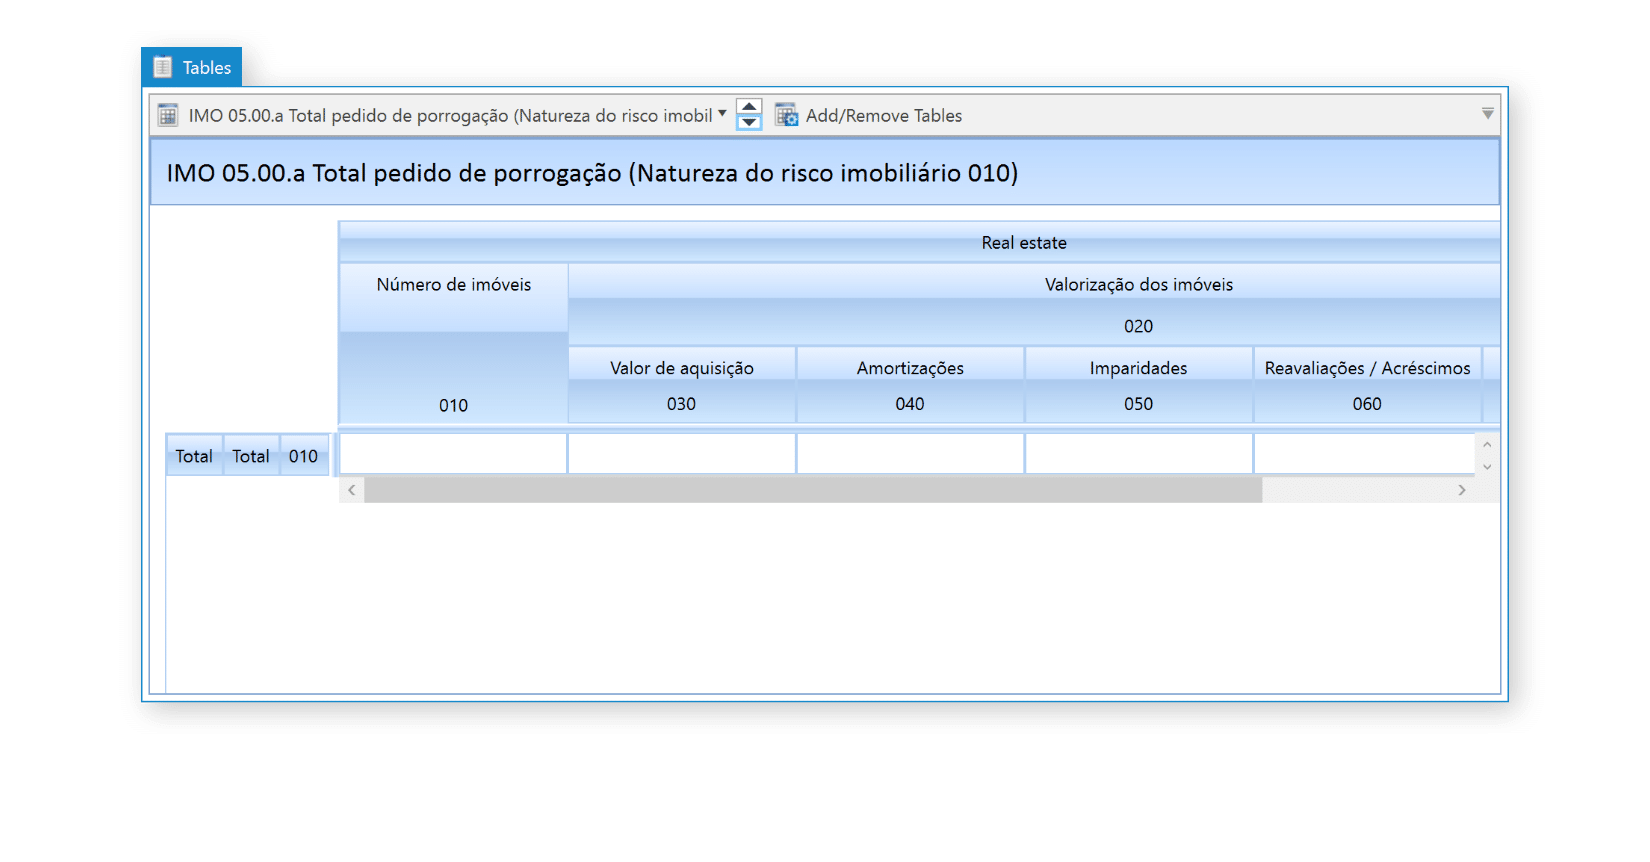 Banco de Portugal RE Taxonomy Rendered in DPM Authority